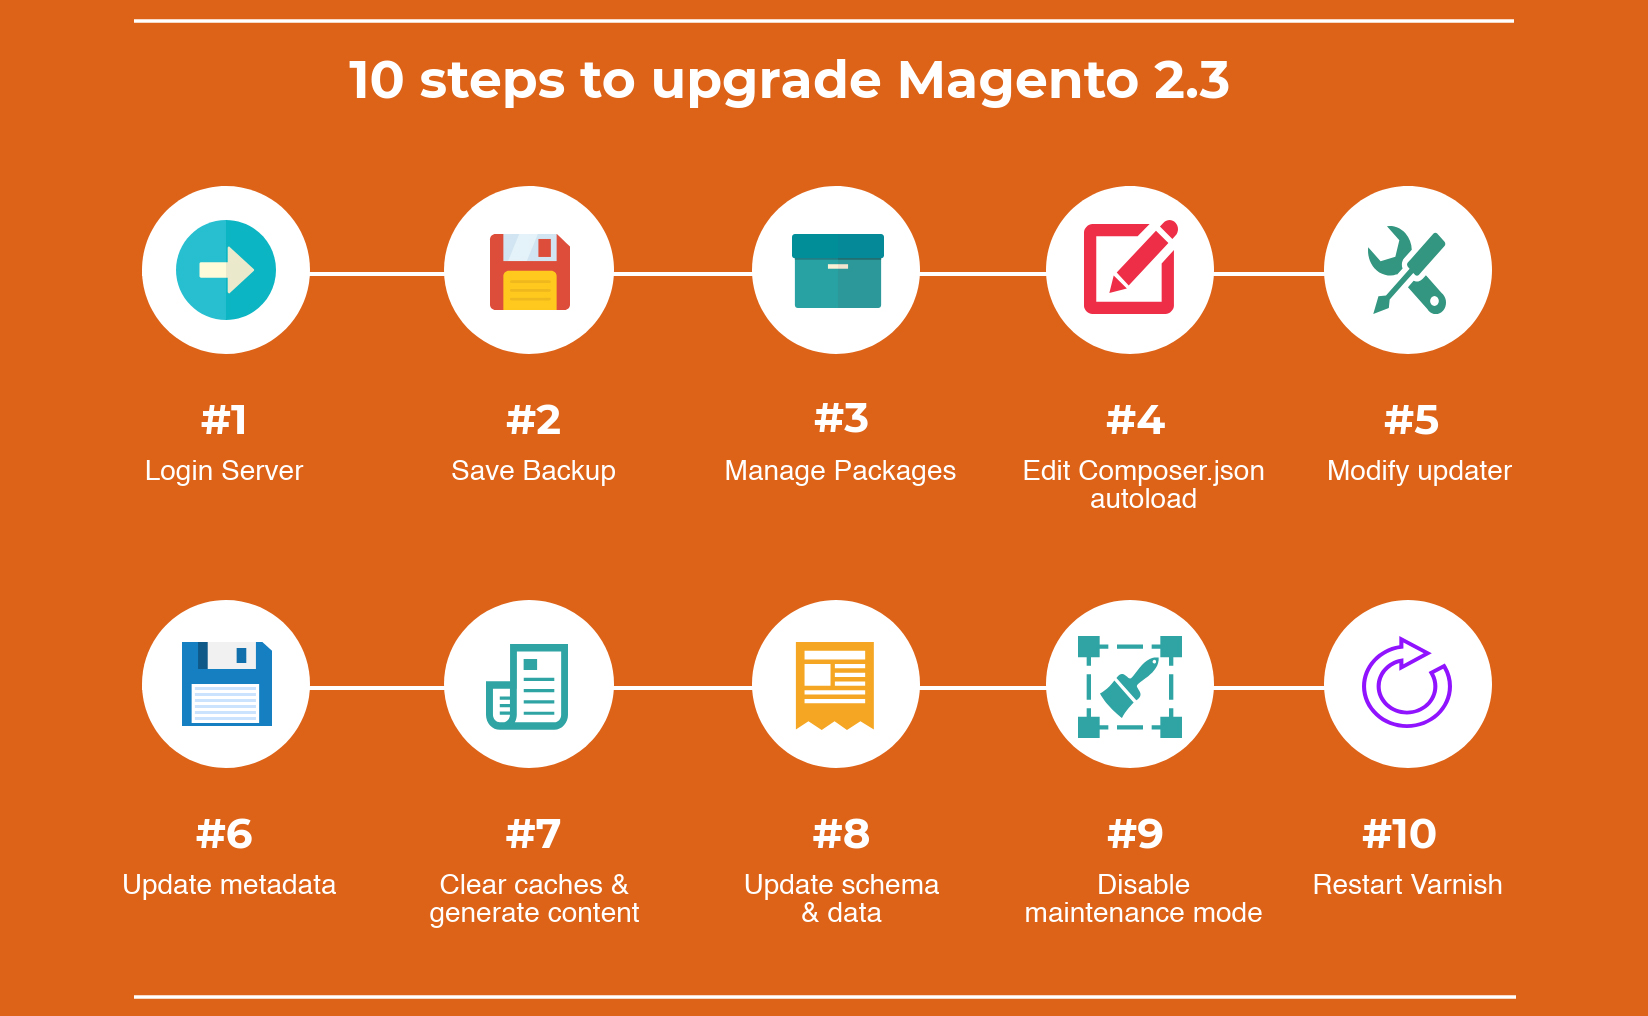 10 steps to upgrade Magento 2.3